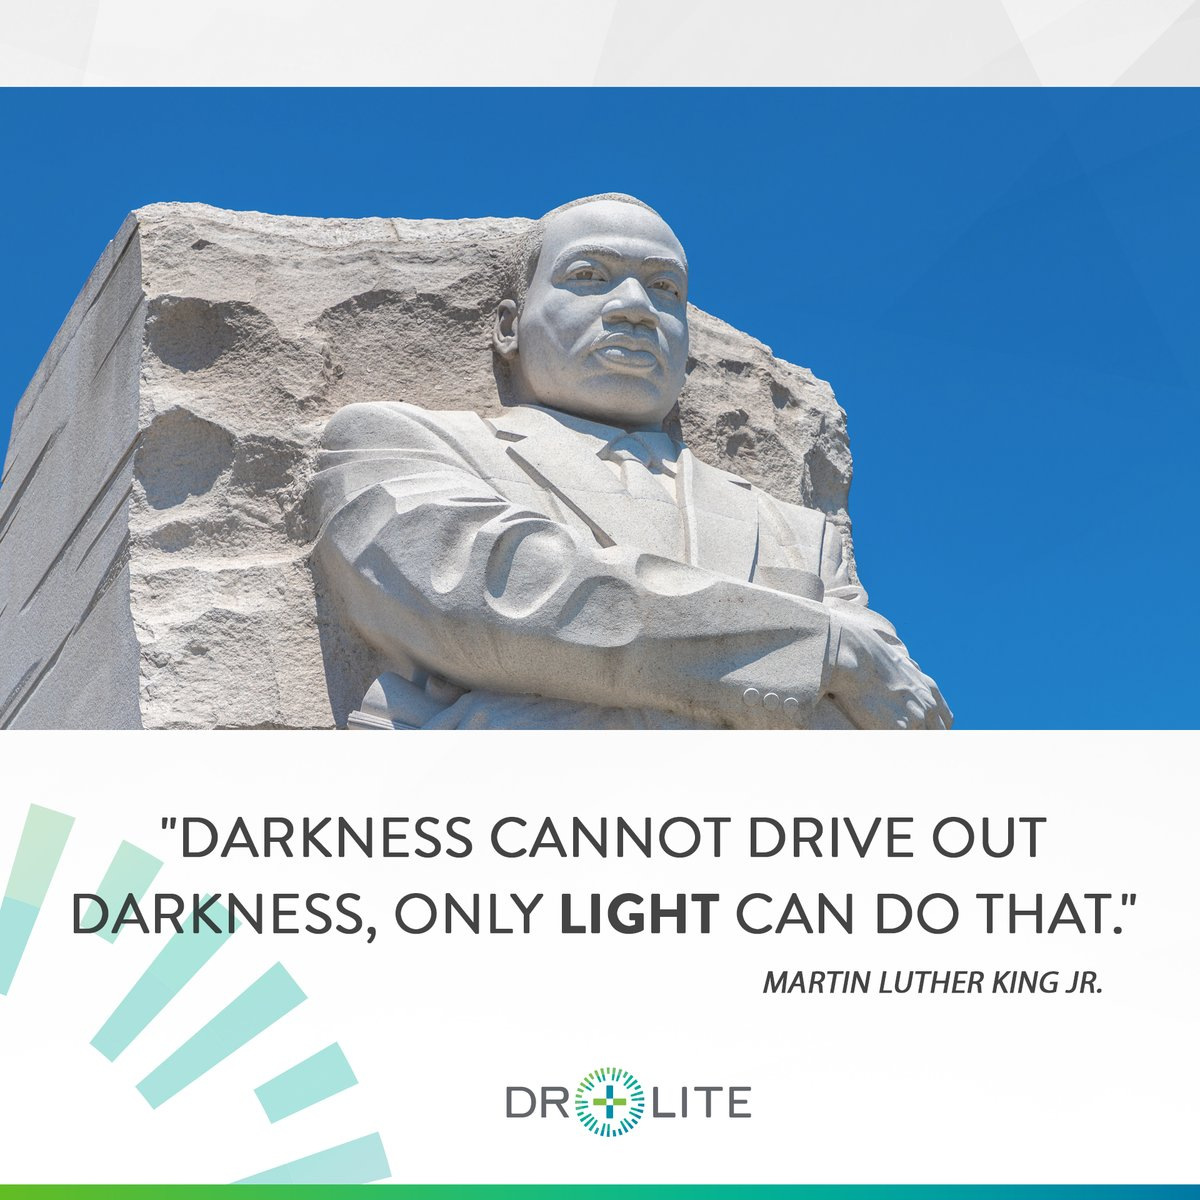 Today is Martin Luther King, Jr. Day. A day when we remember the importance of light over darkness, love over hate, standing up for the rights of the marginalized, and dreaming of a better future 🕊  #mlkjr #mlkday #mlkquotes #loveoverhate #speakup #ihaveadream #mlkday2021